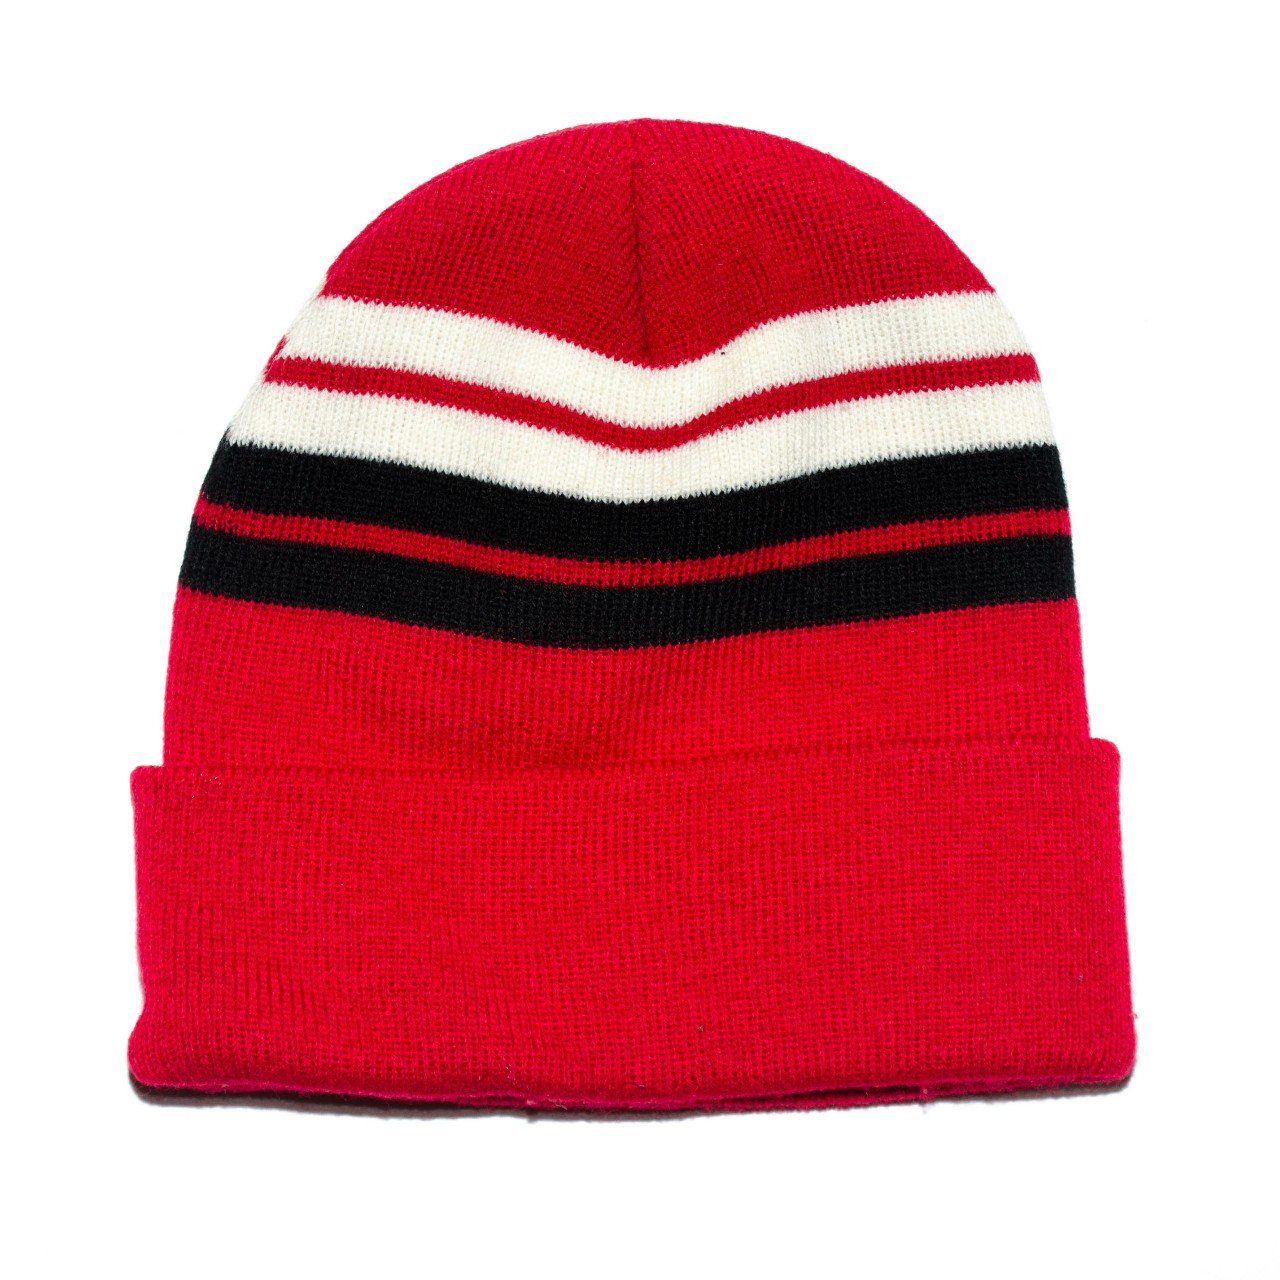 Red with black and white stripes beanie brand new - Depop 7b2335237fe